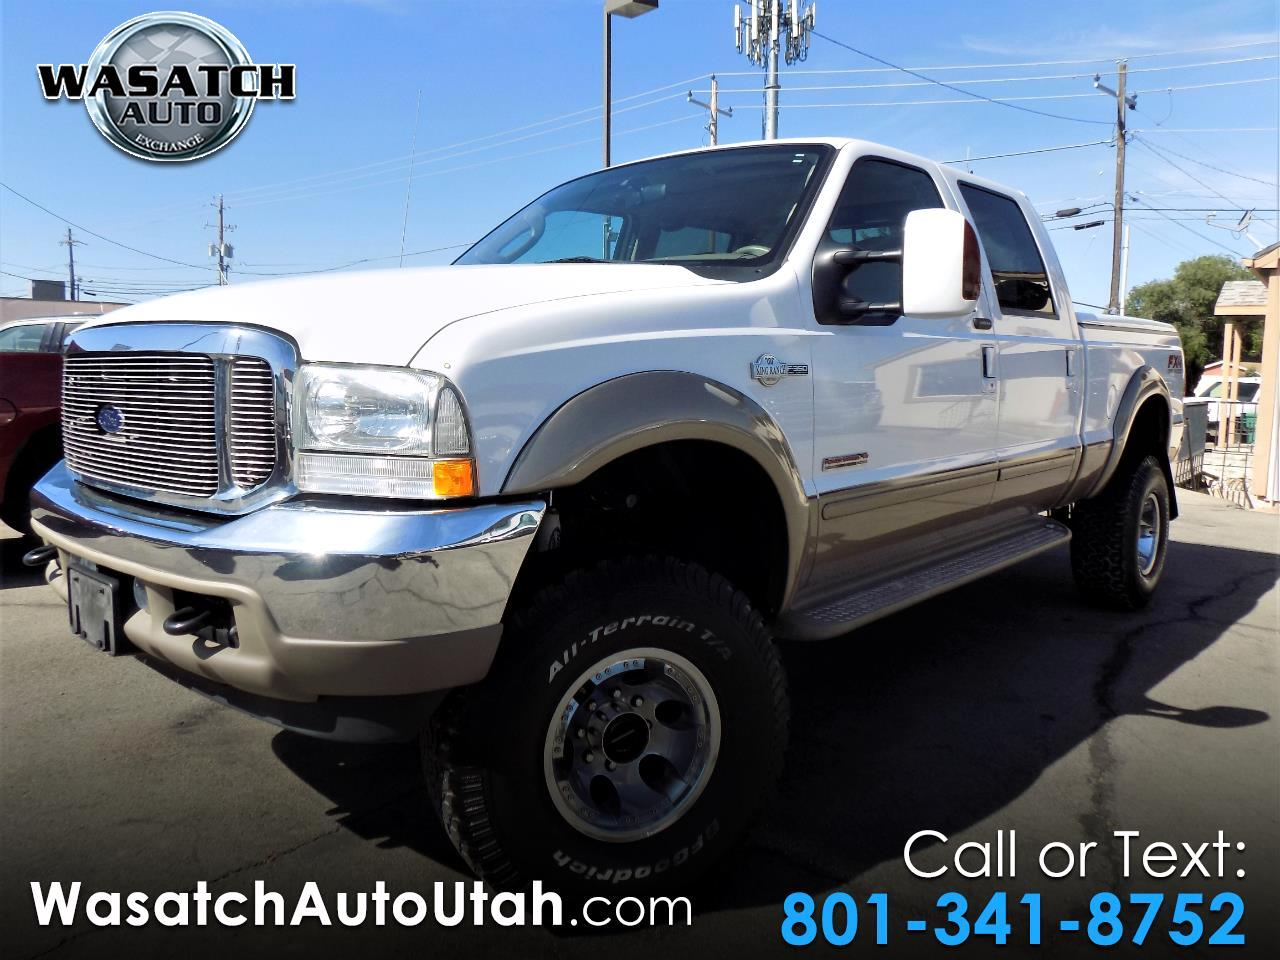 2004 Ford F-350 King Ranch